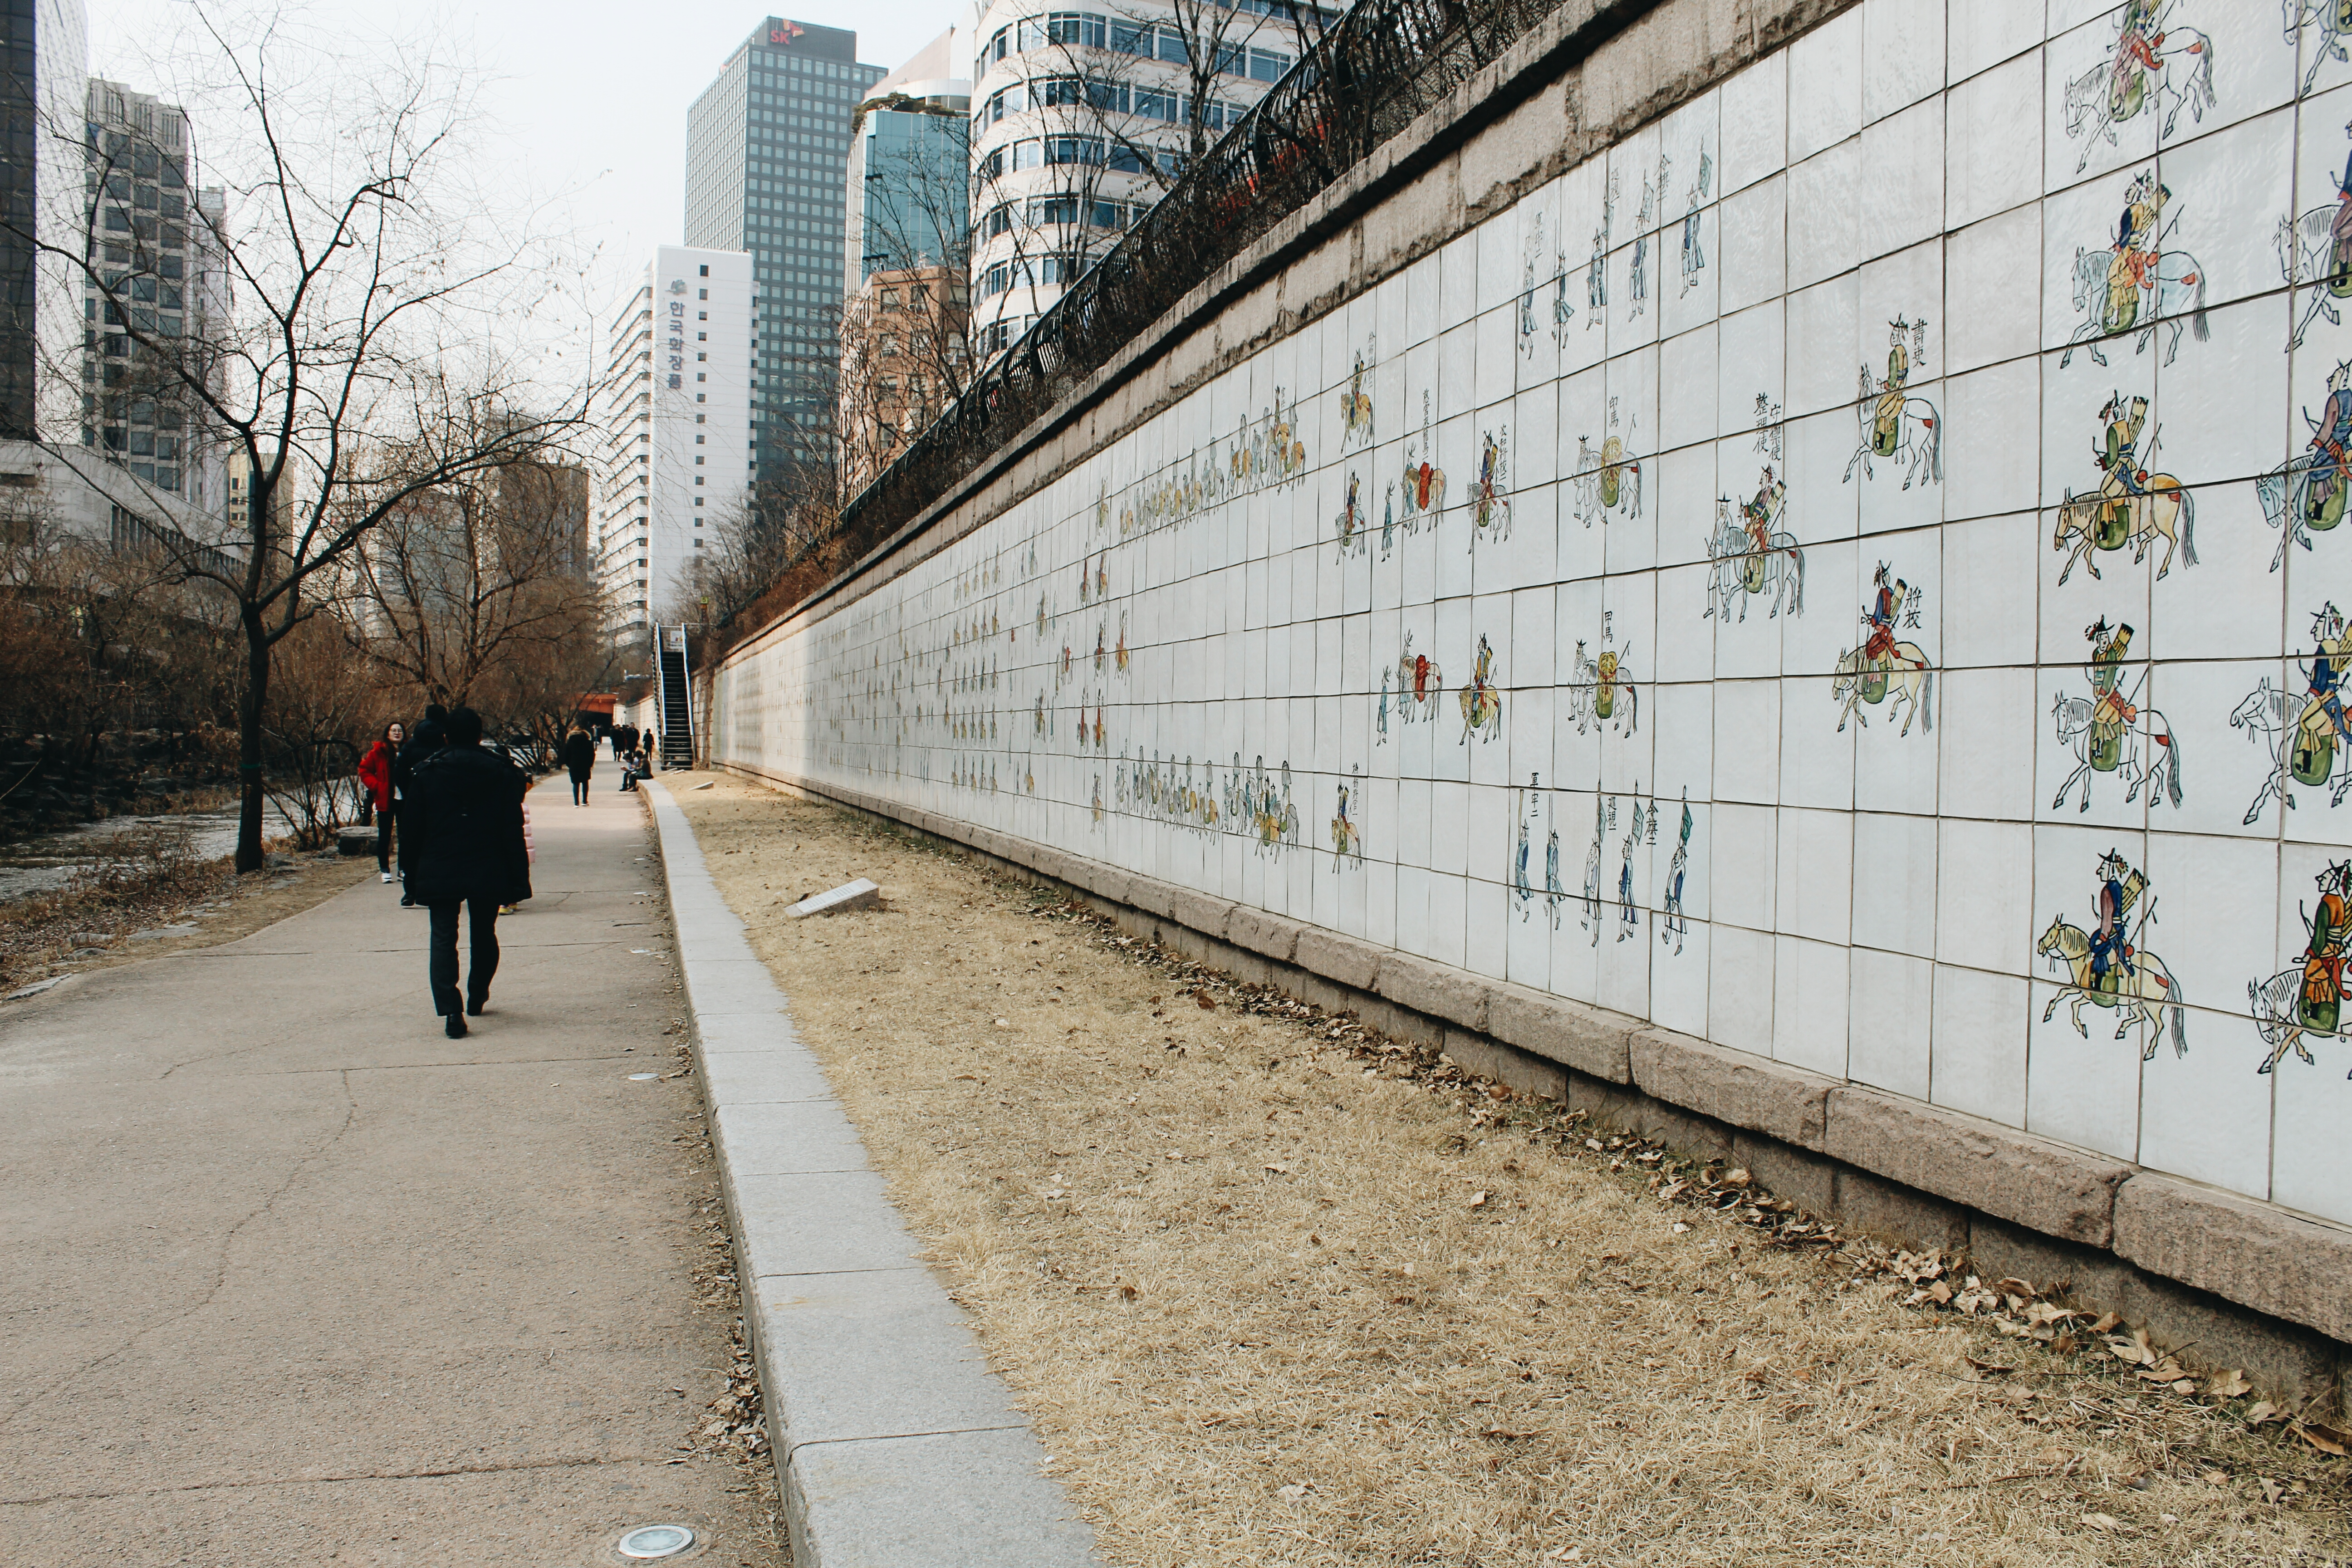 Murals depicting Korean history on the walls of the Cheonggyecheon stream